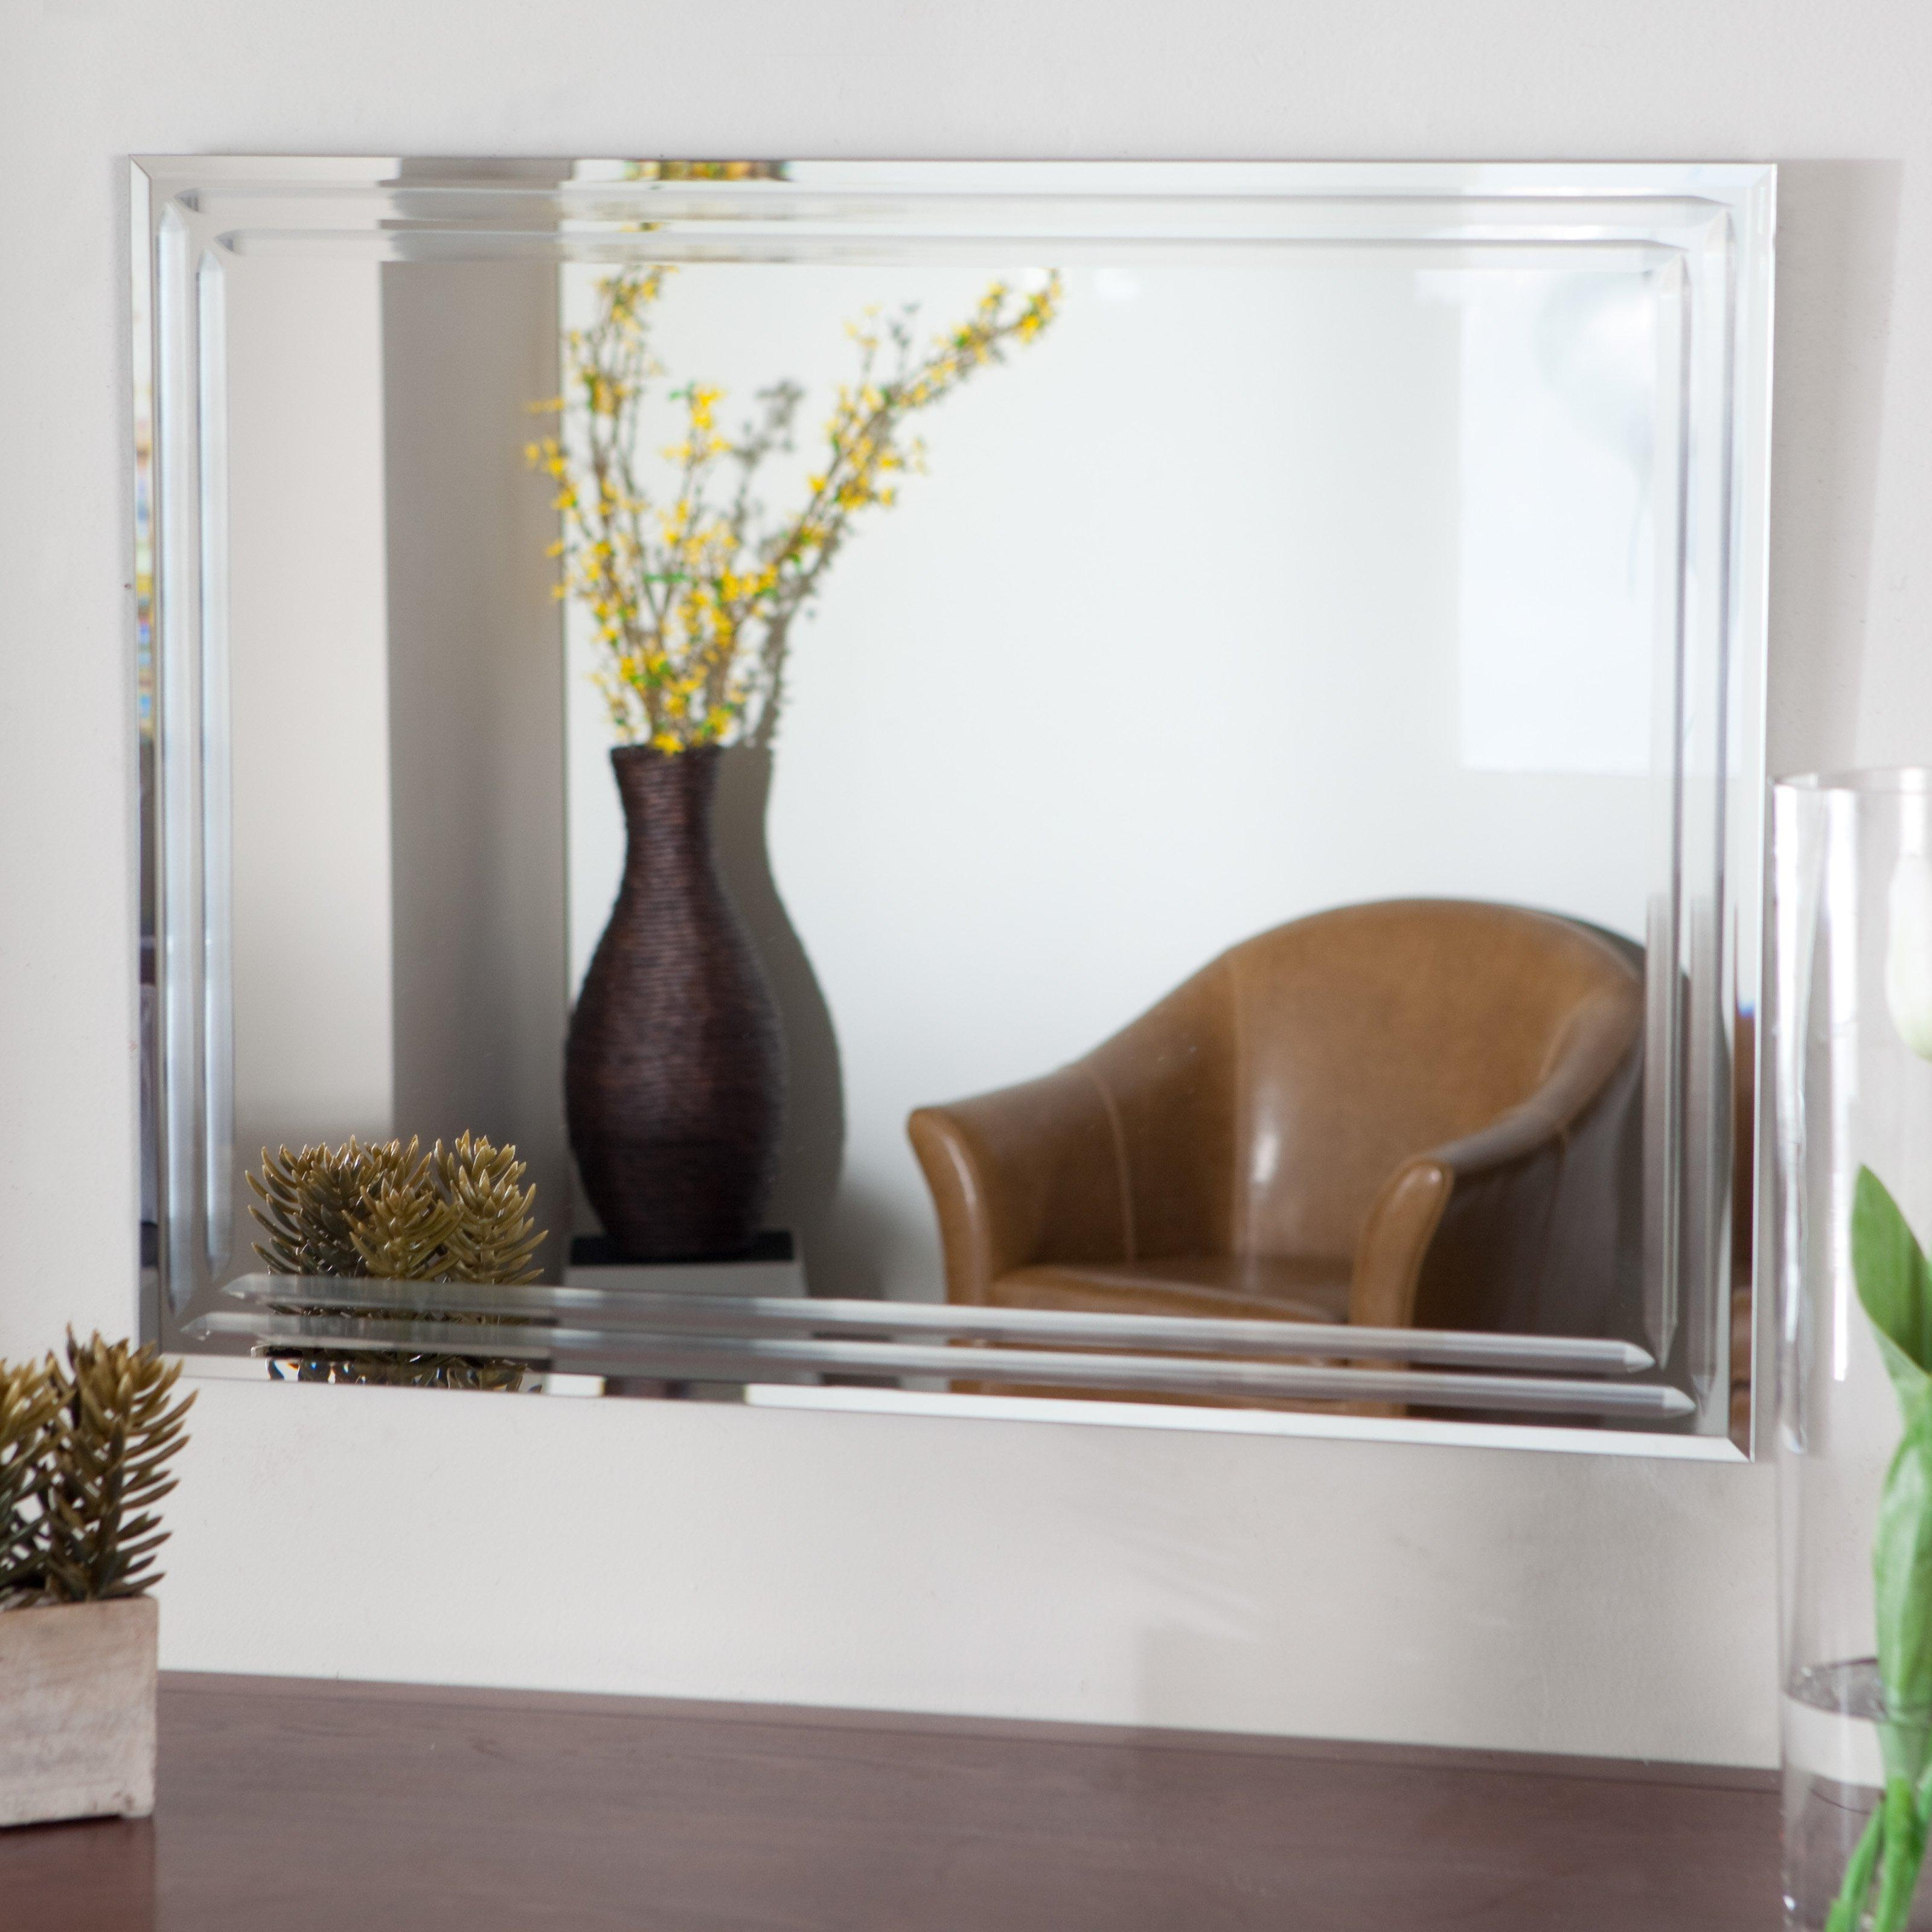 Tekema Rectangle Frameless Wall Mirror – 42W X 30H In (Image 19 of 20)